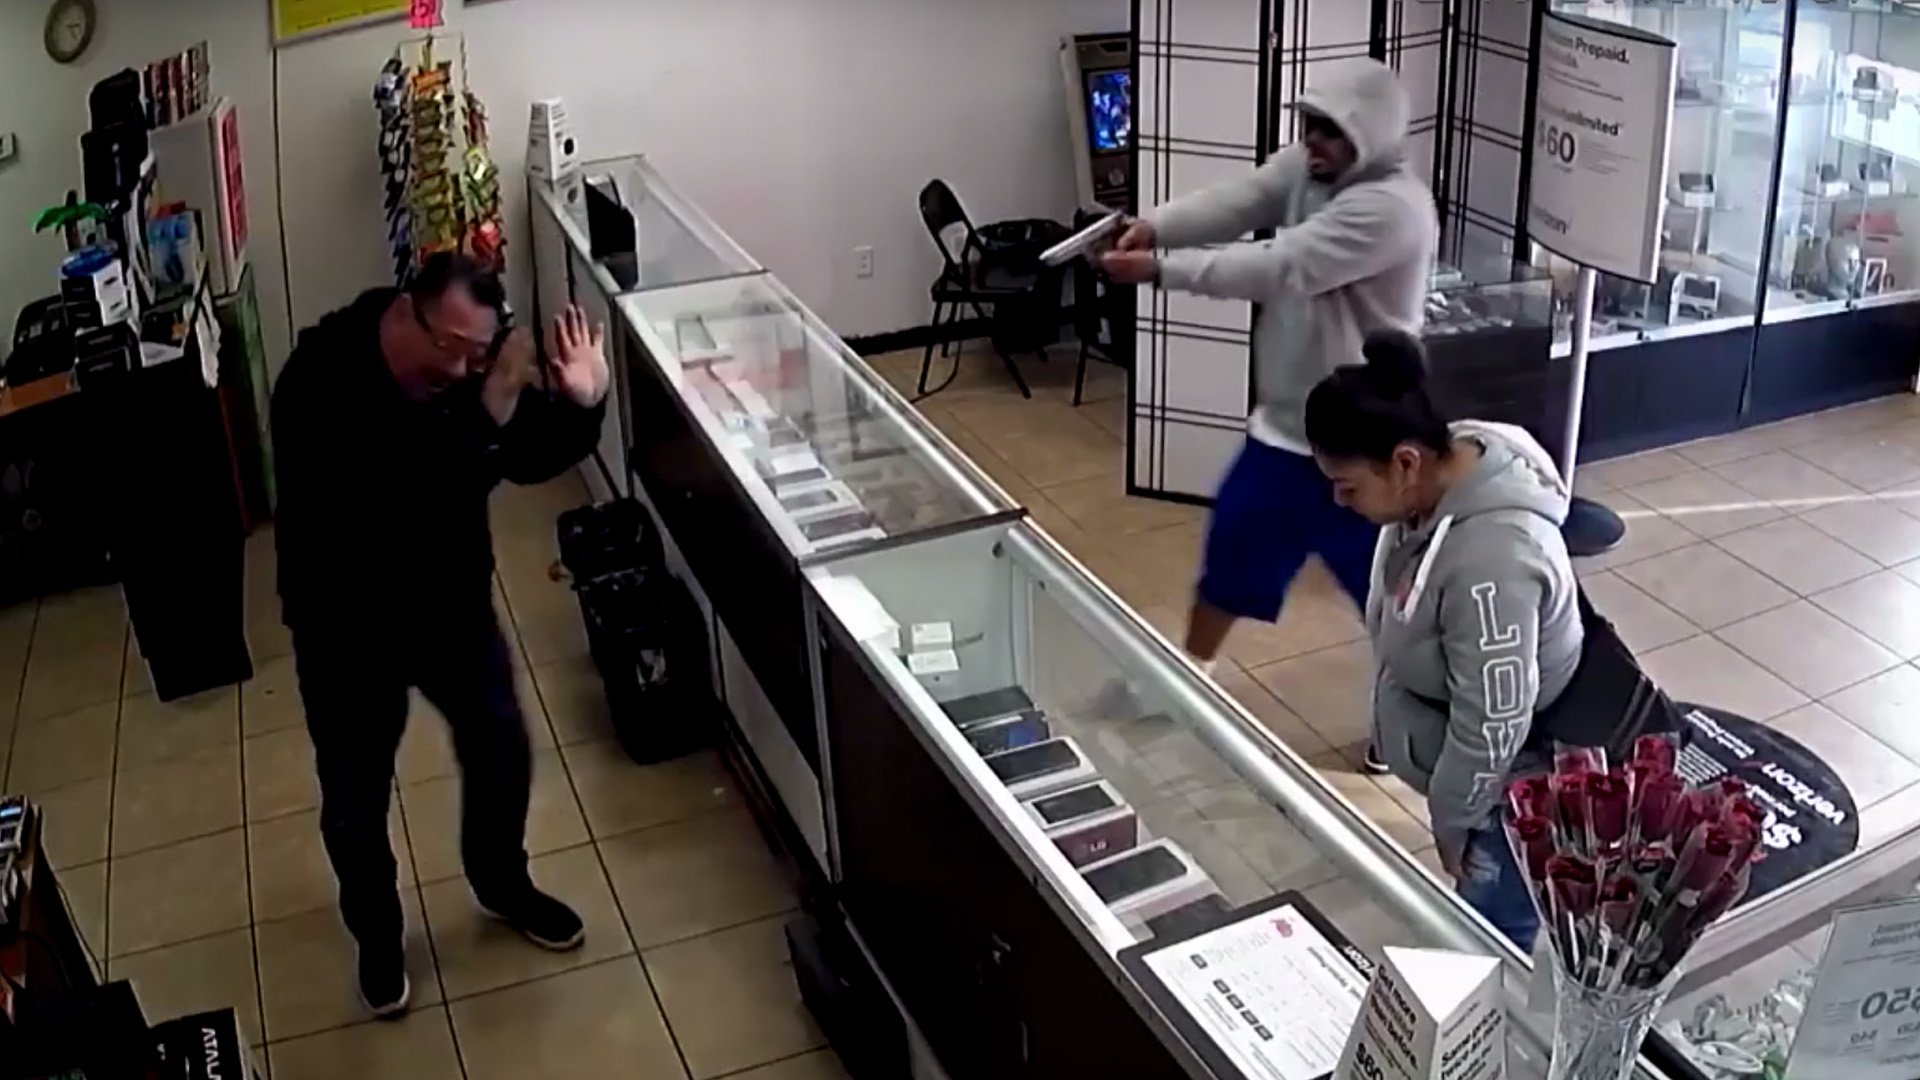 Security camera footage released by the San Bernardino Sheriff's Department shows an armed robbery that took place on Dec. 16, 2019, at a T-mobile store in Highland.